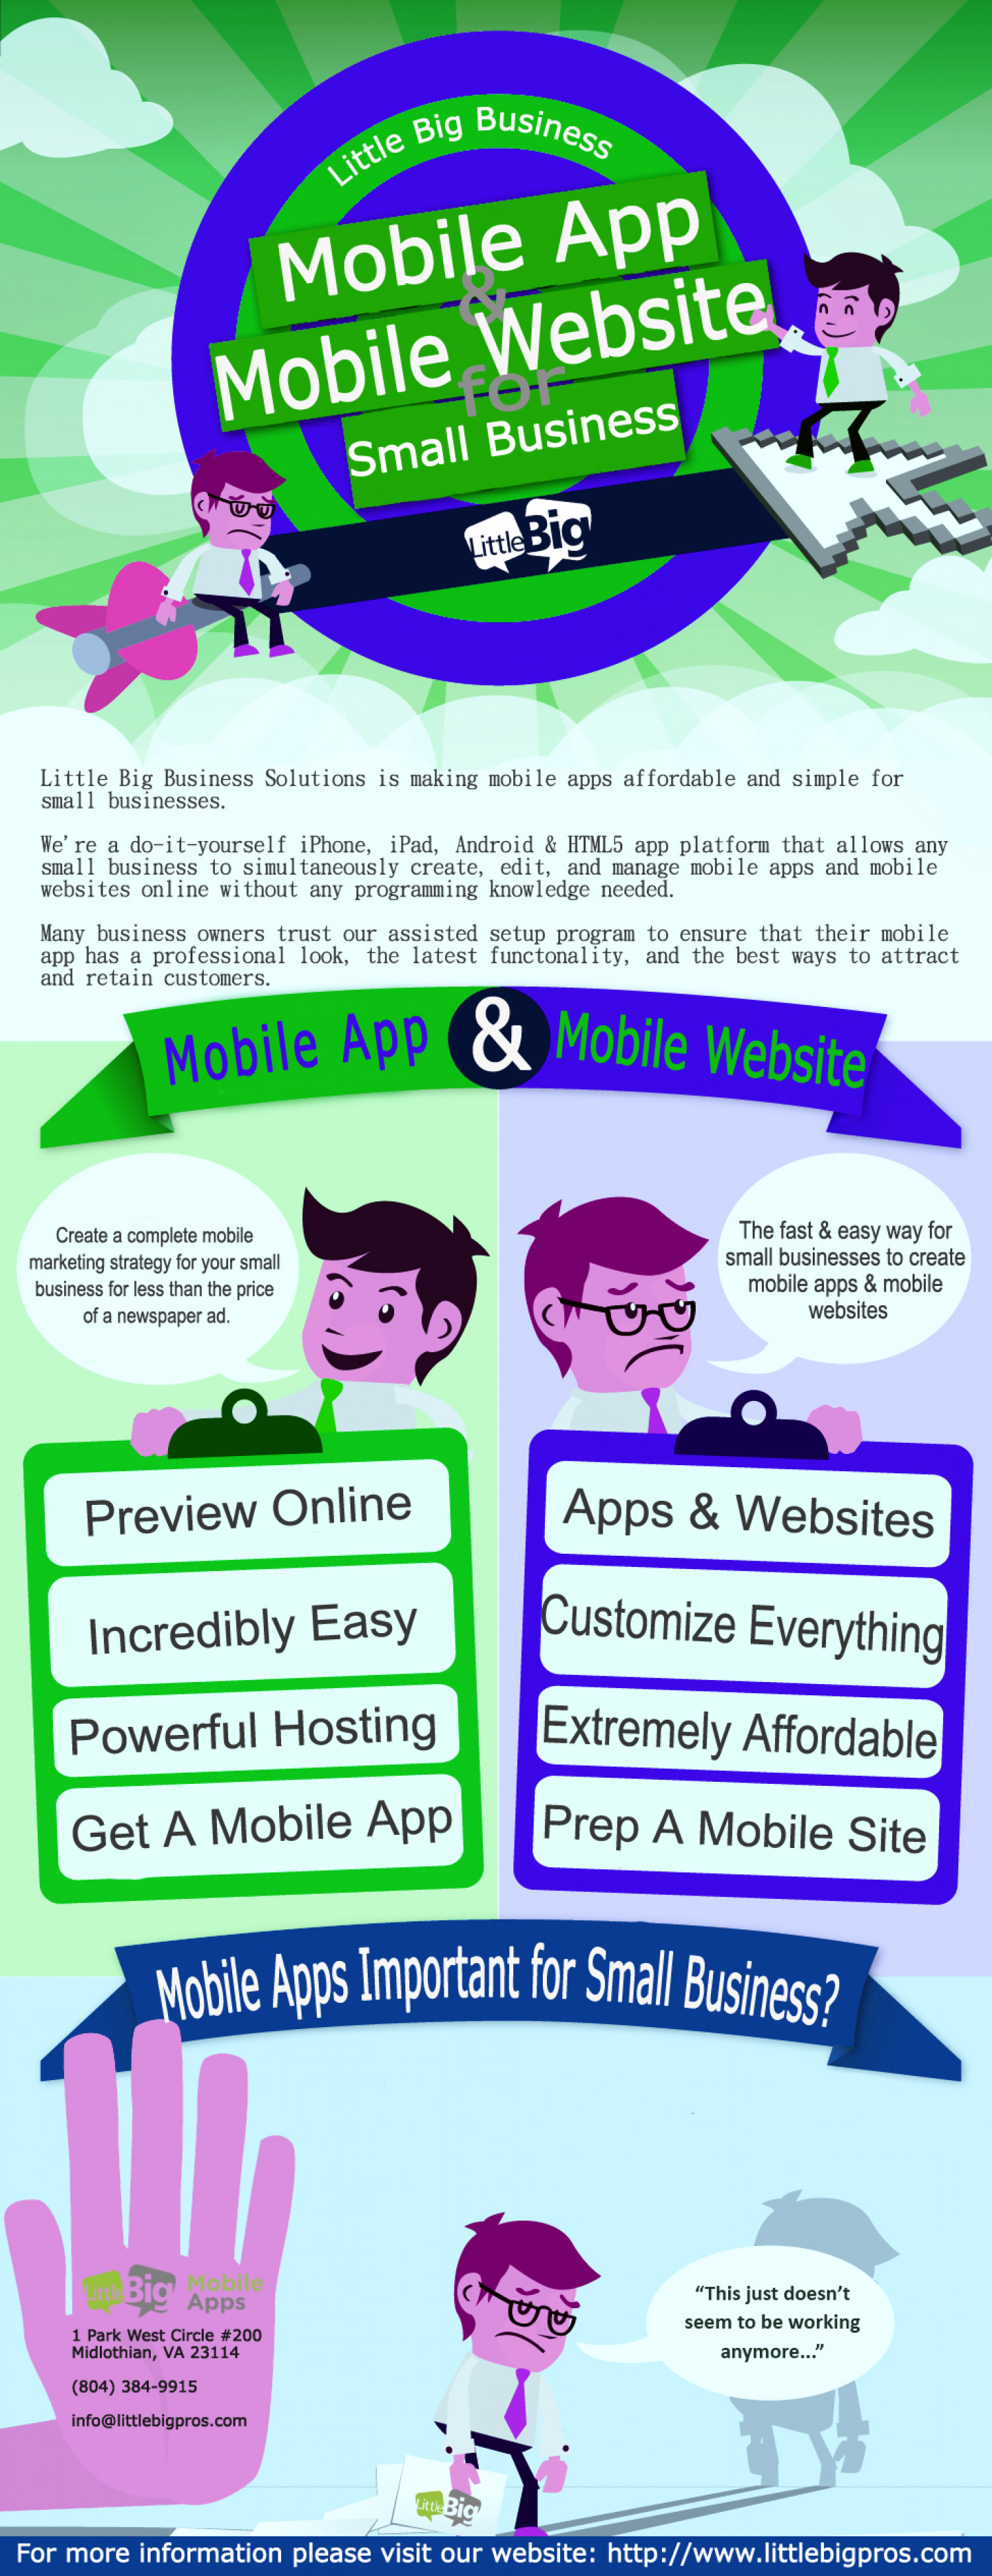 Mobile Apps & Mobile Websites For Small Business in Richmond Infographic